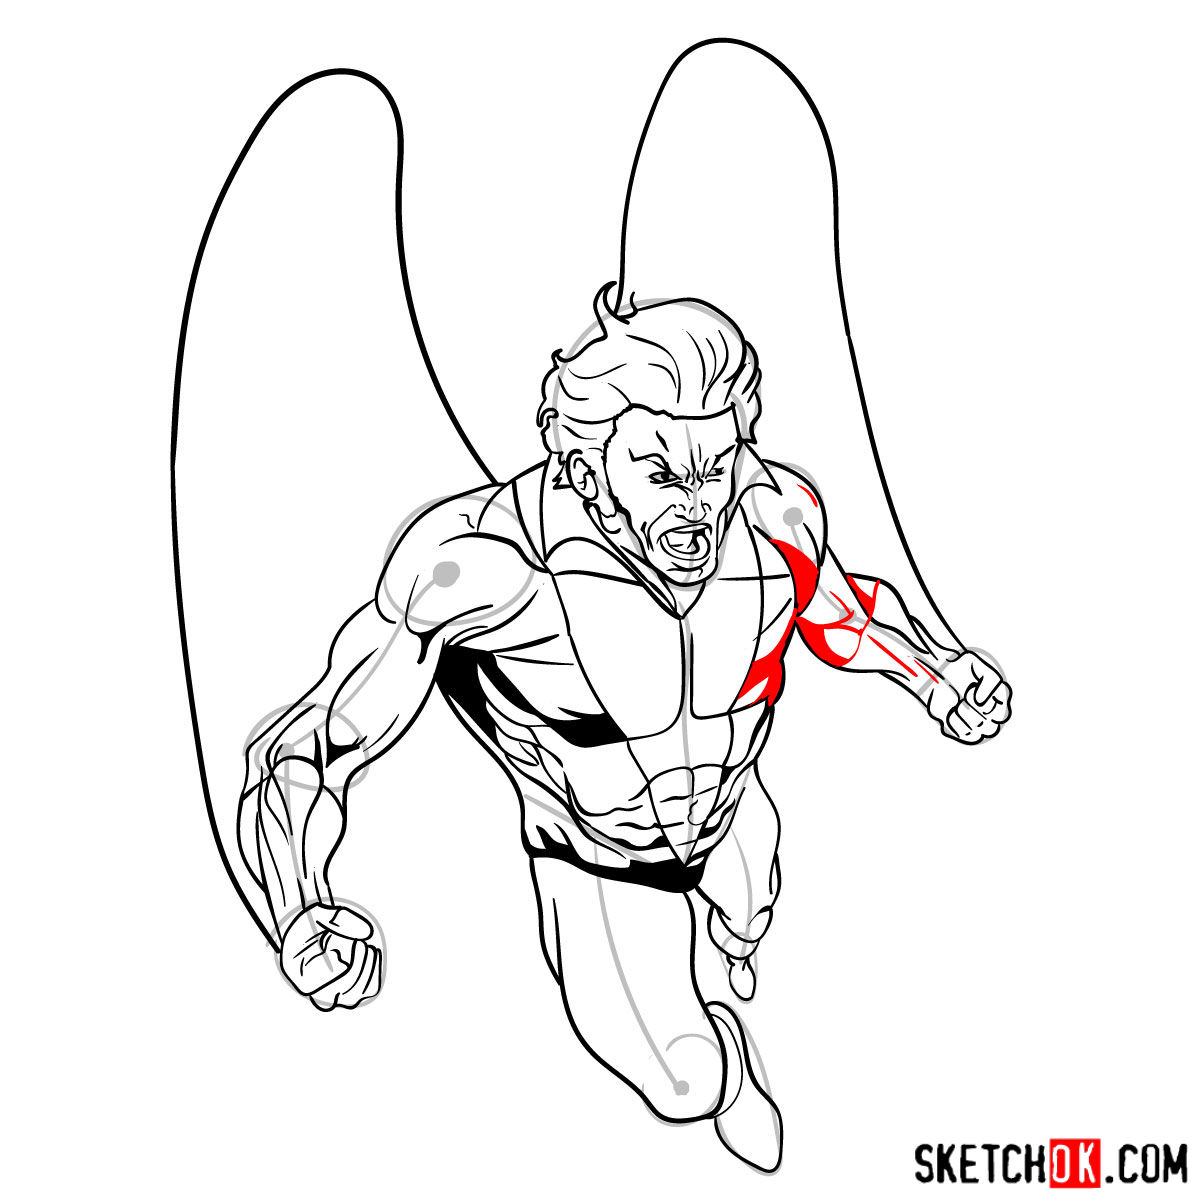 How to draw Banshee mutant from X-Men - step 16